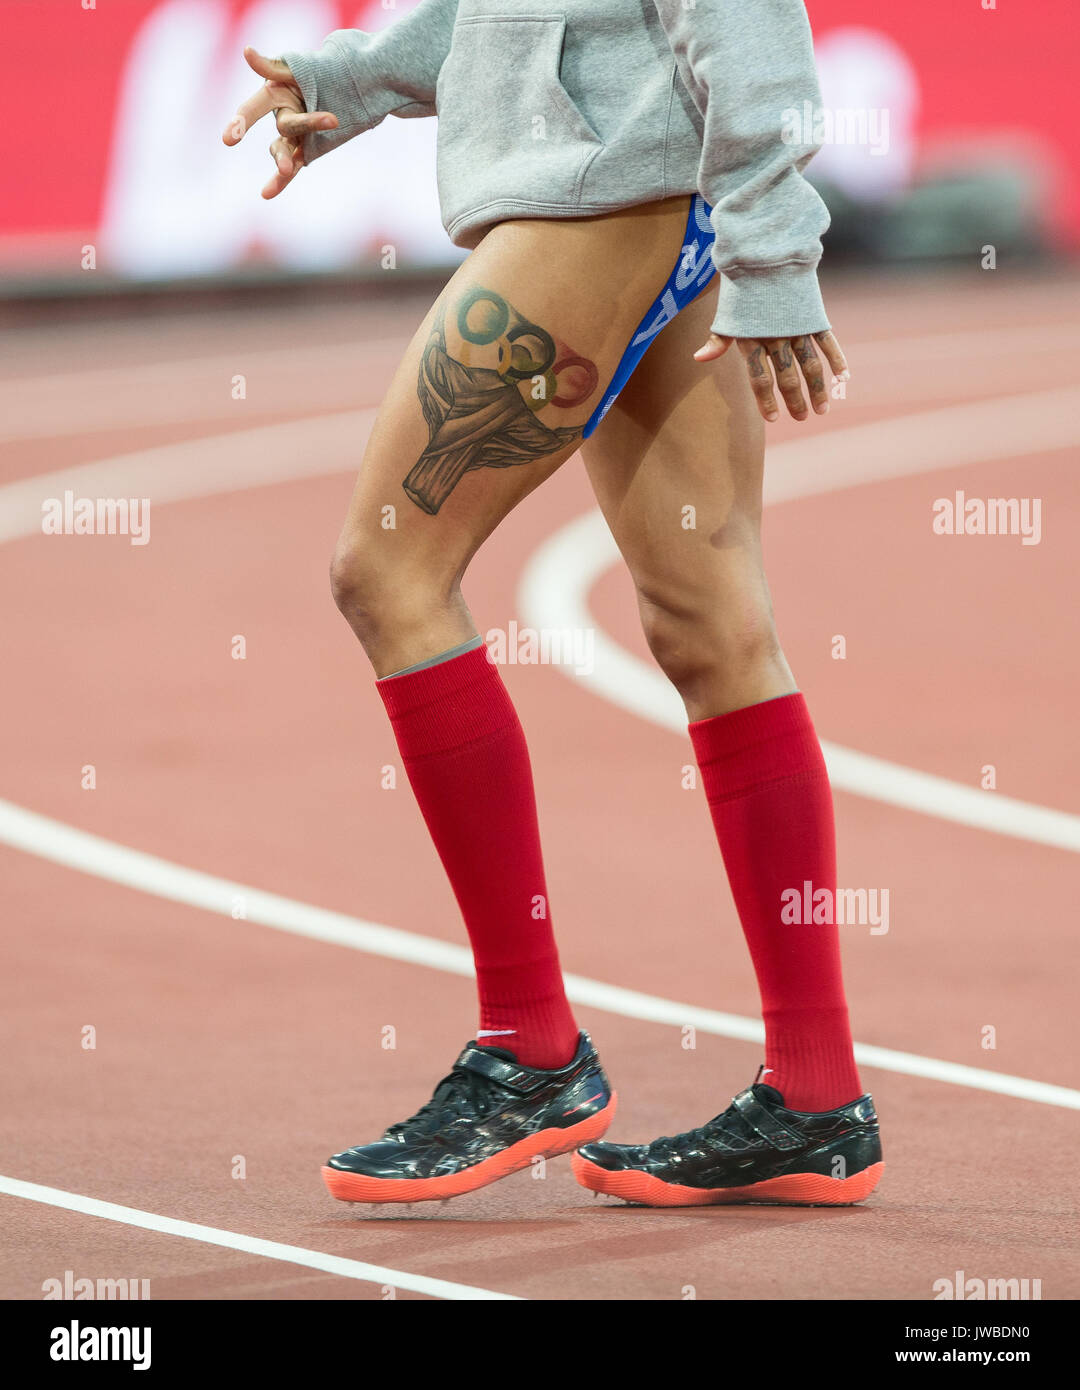 INIKA MCPHERSON of USA leg tattoo during the High Jump Qualifications at the IAAF World Athletics Championships 2017 - Day 7 at the Olympic Park, Lond - Stock Image